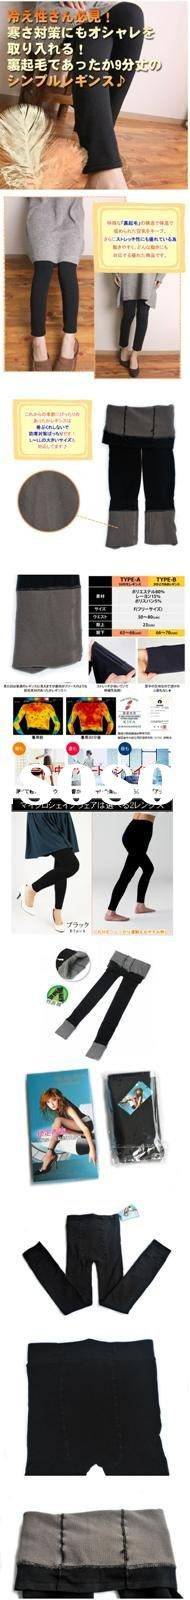 bamboo charcoal slimming body shaper tights